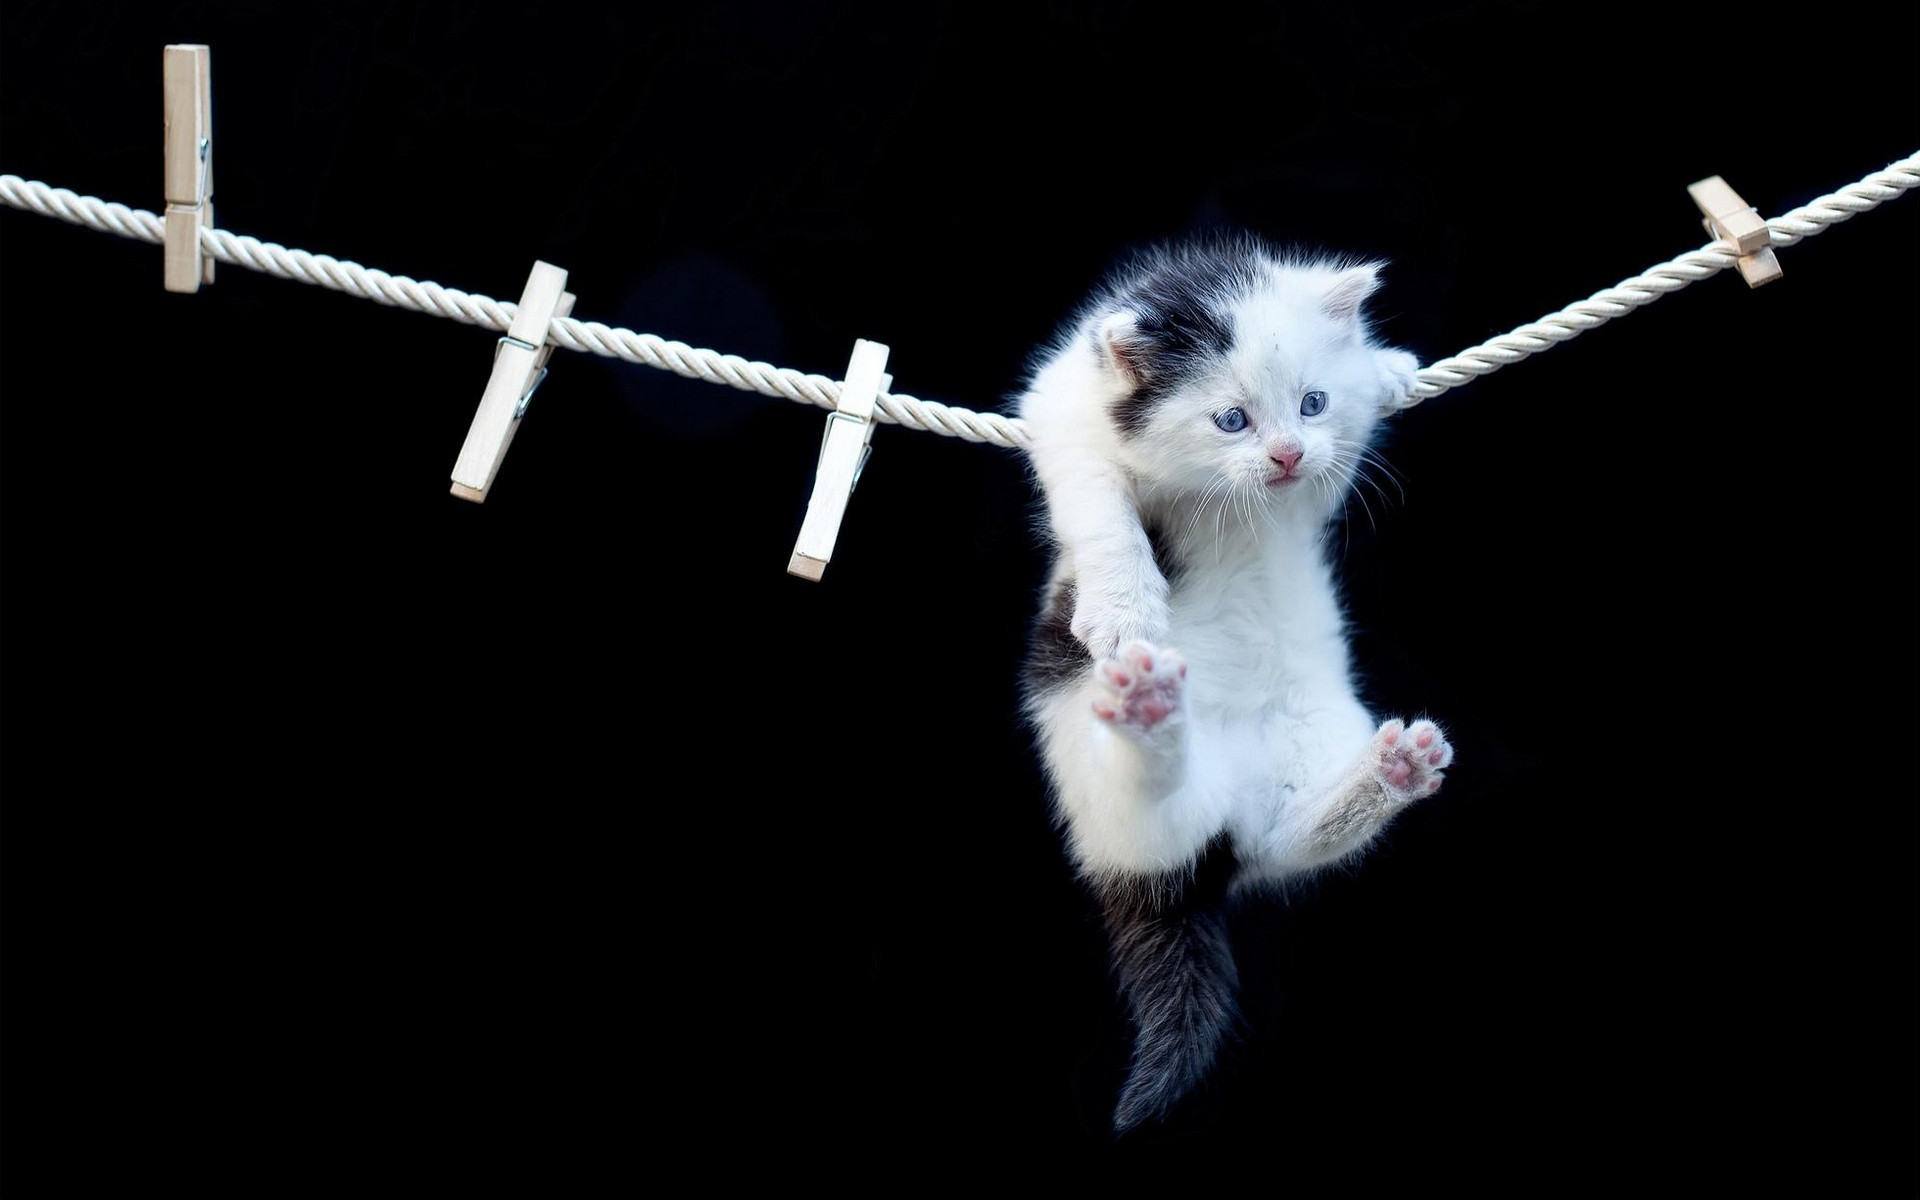 1920x1200 Cute Hanging Kitten HD Desktop Wallpaper available for Free Download at  MrHDWallpapers.com!